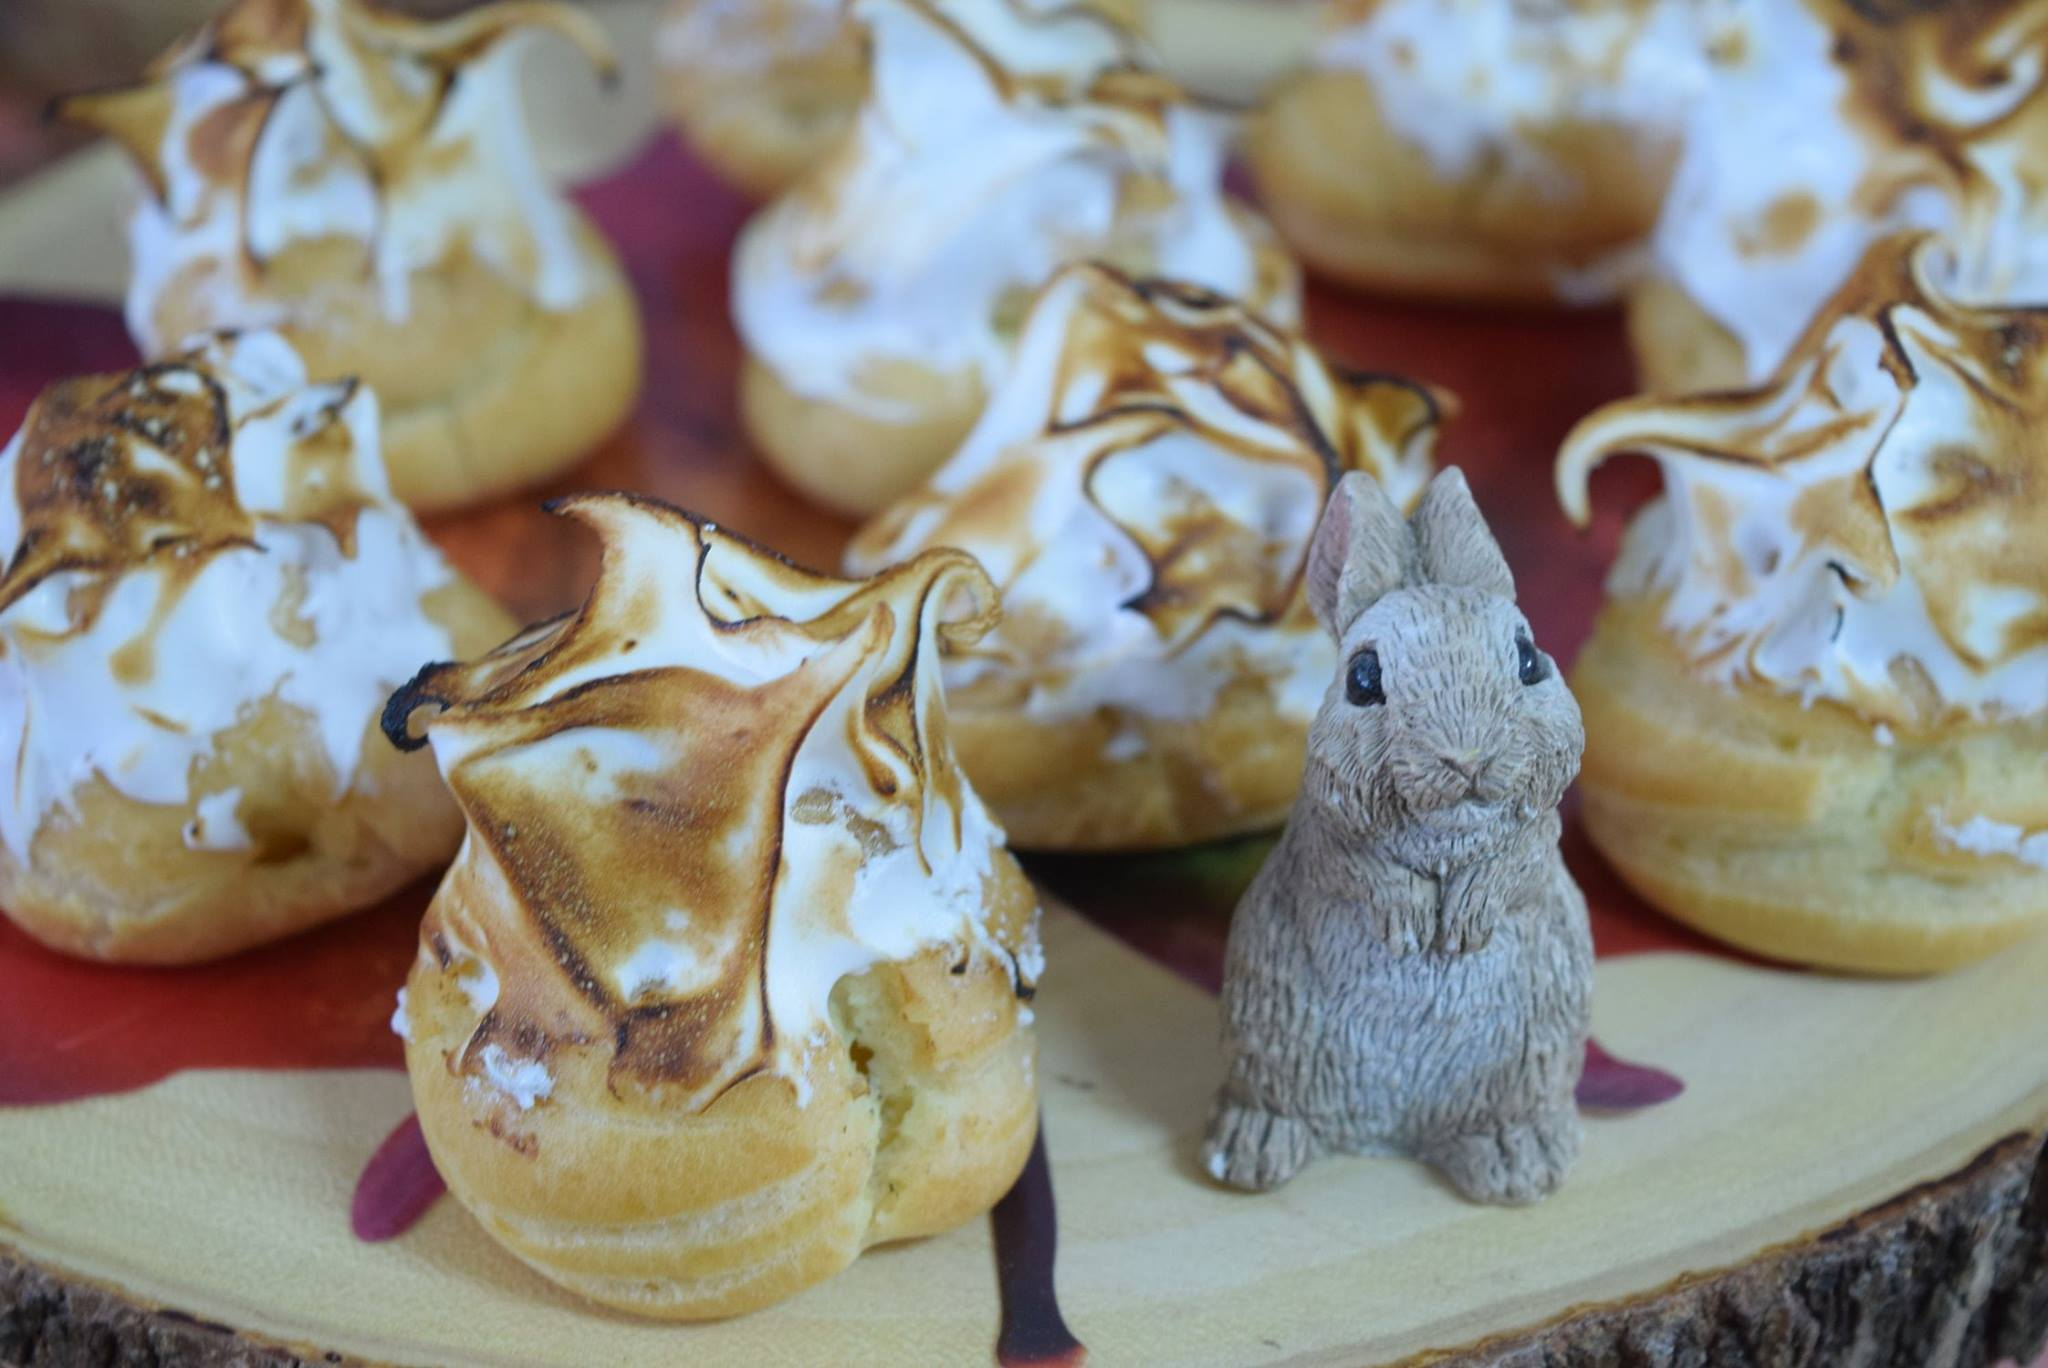 Toasted Meringue Cream Puff